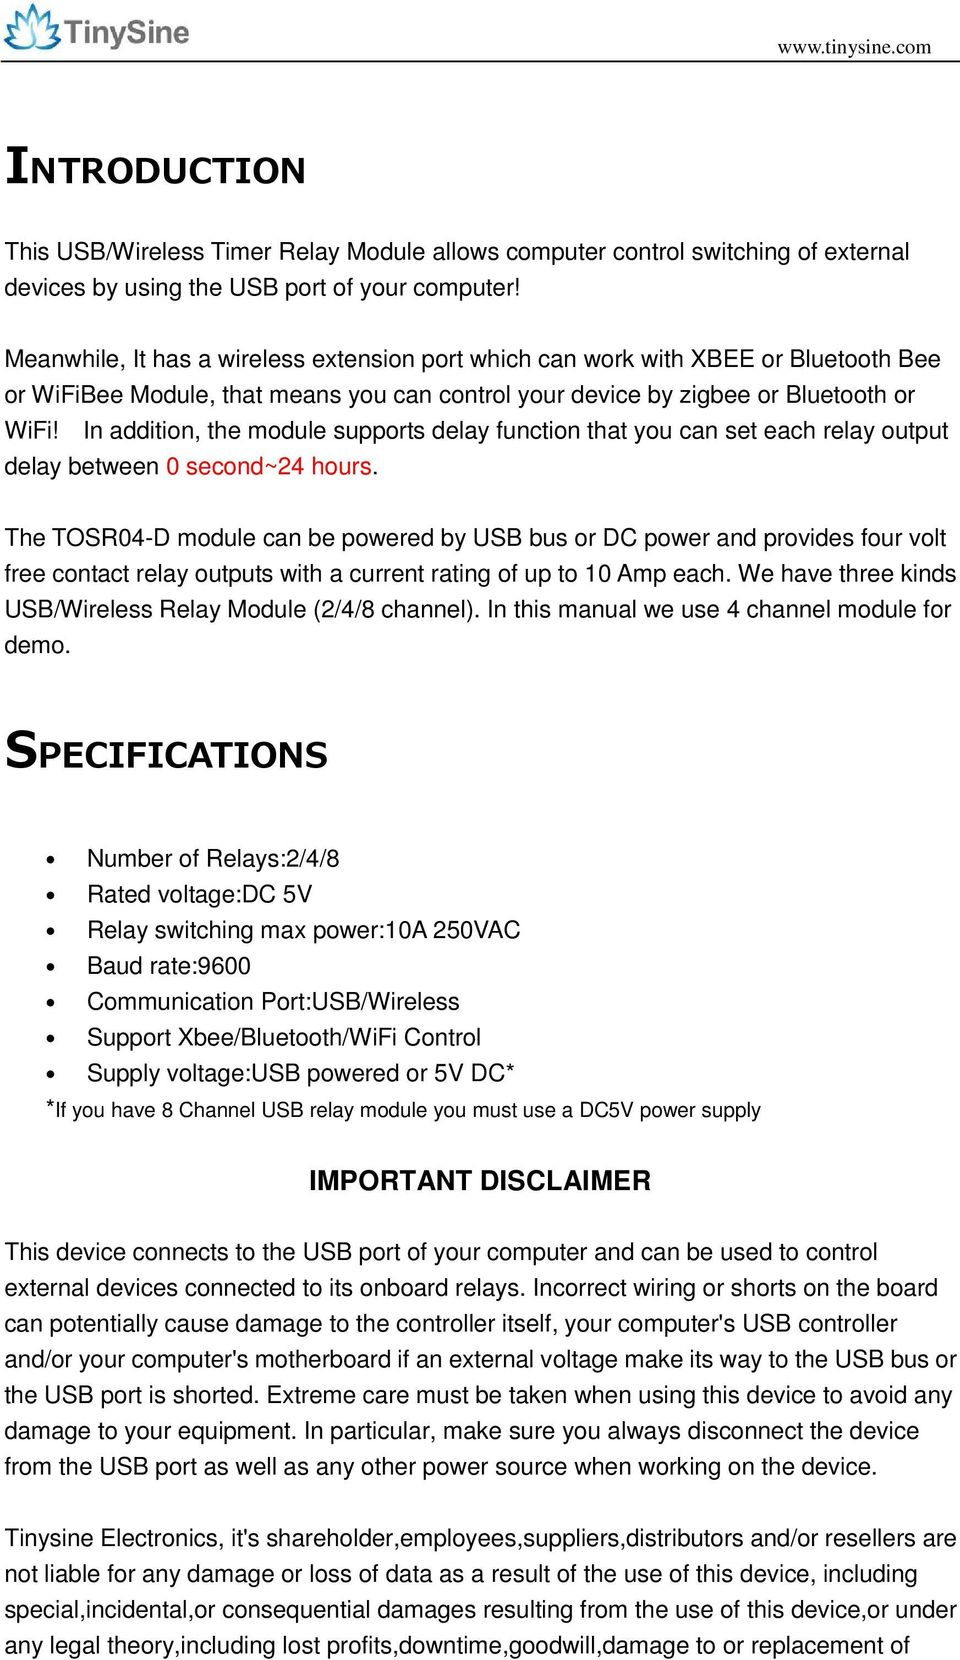 TOSR0X-D  USB/Wireless Timer Relay Module  User Manual  Tinysine